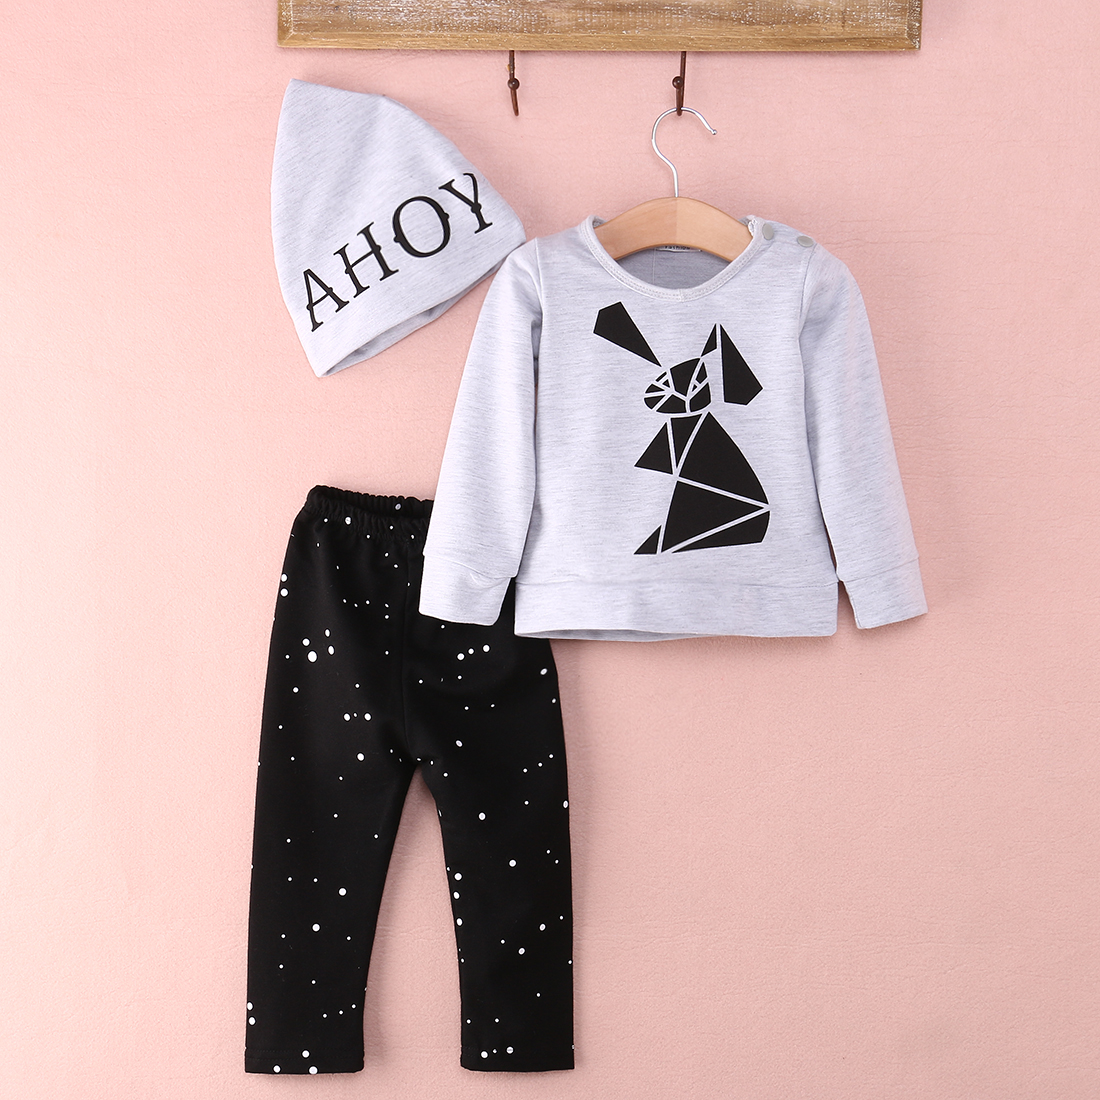 2016 Autumn Style Baby Clothing Set Cotton Newborn Baby Girl Clothes Sets Baby Boy Suit<br><br>Aliexpress